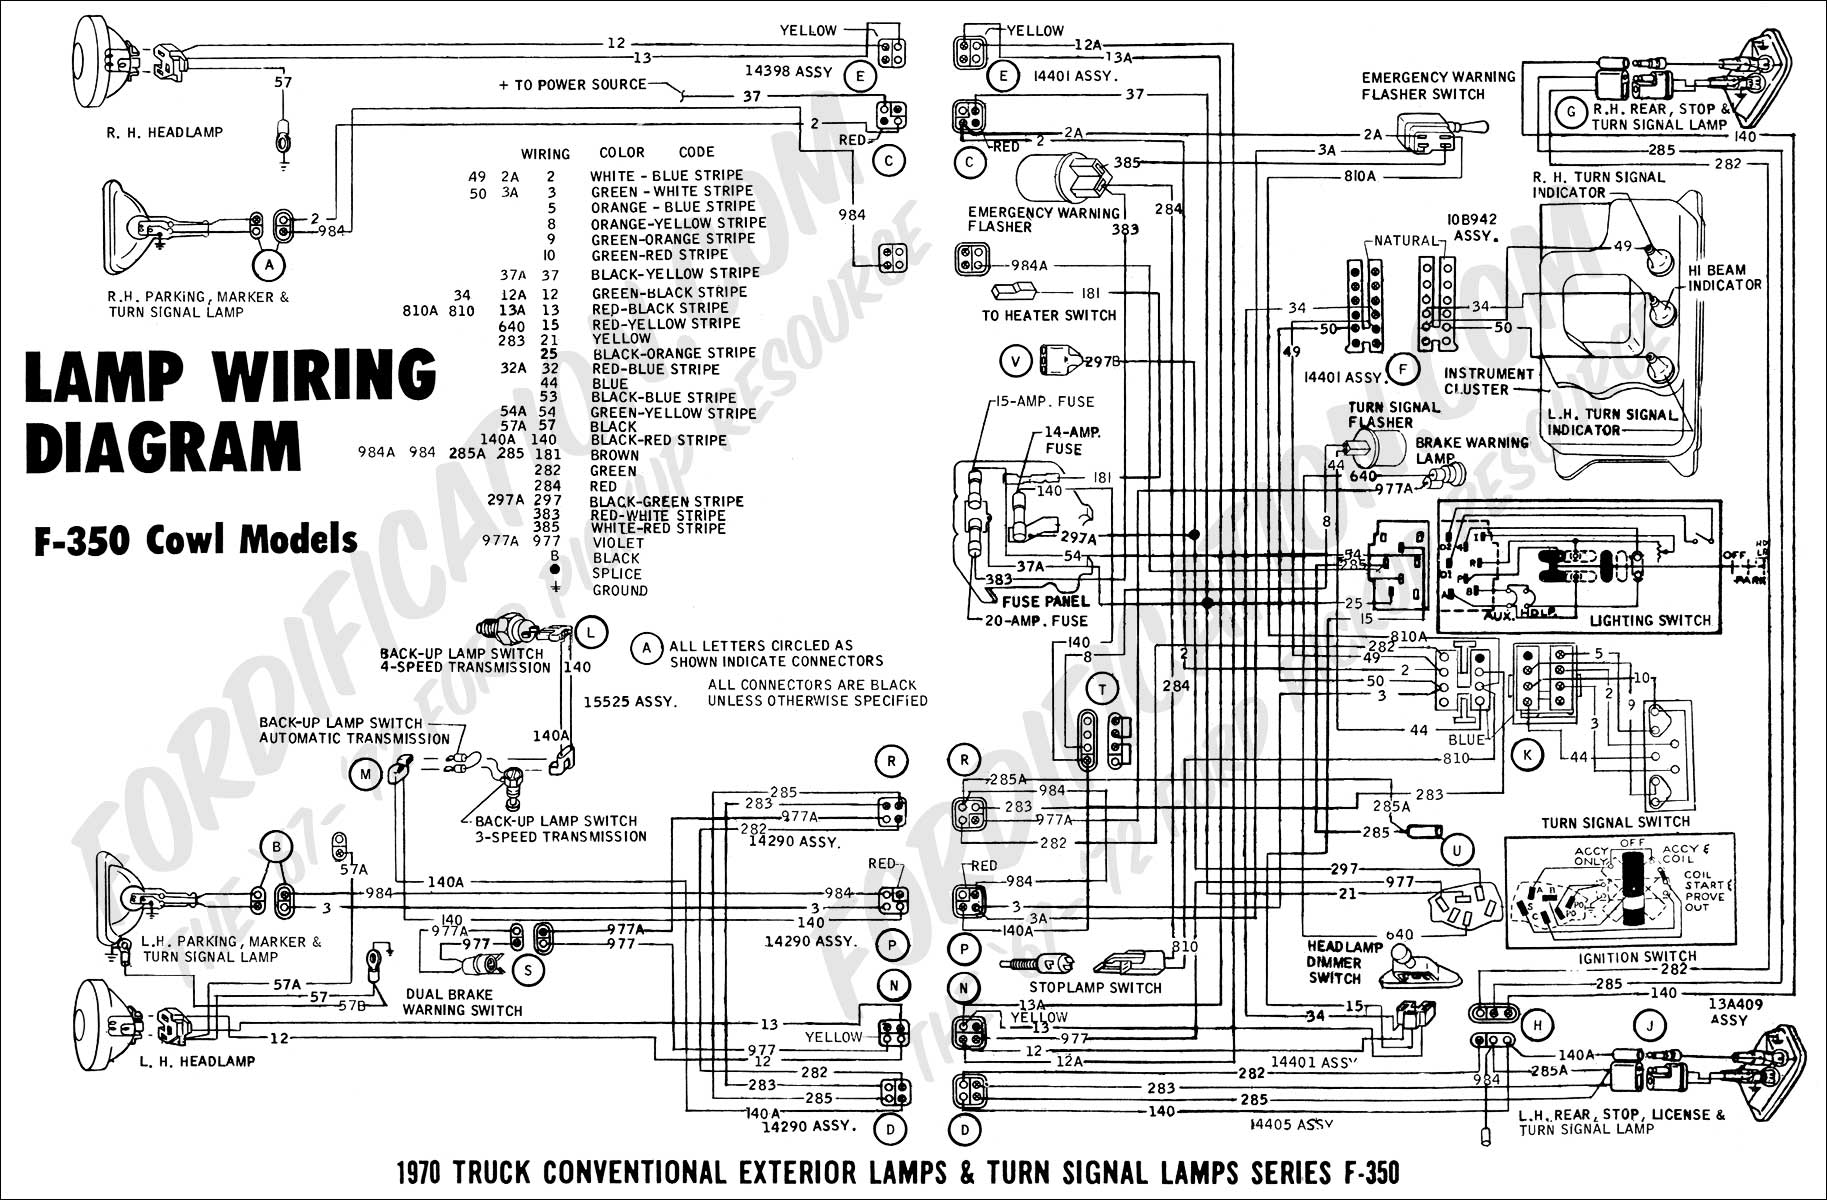 ford f250 wiring diagram electrical diagrams forum u2022 rh jimmellon co uk 2015 ford f 250 wiring diagram